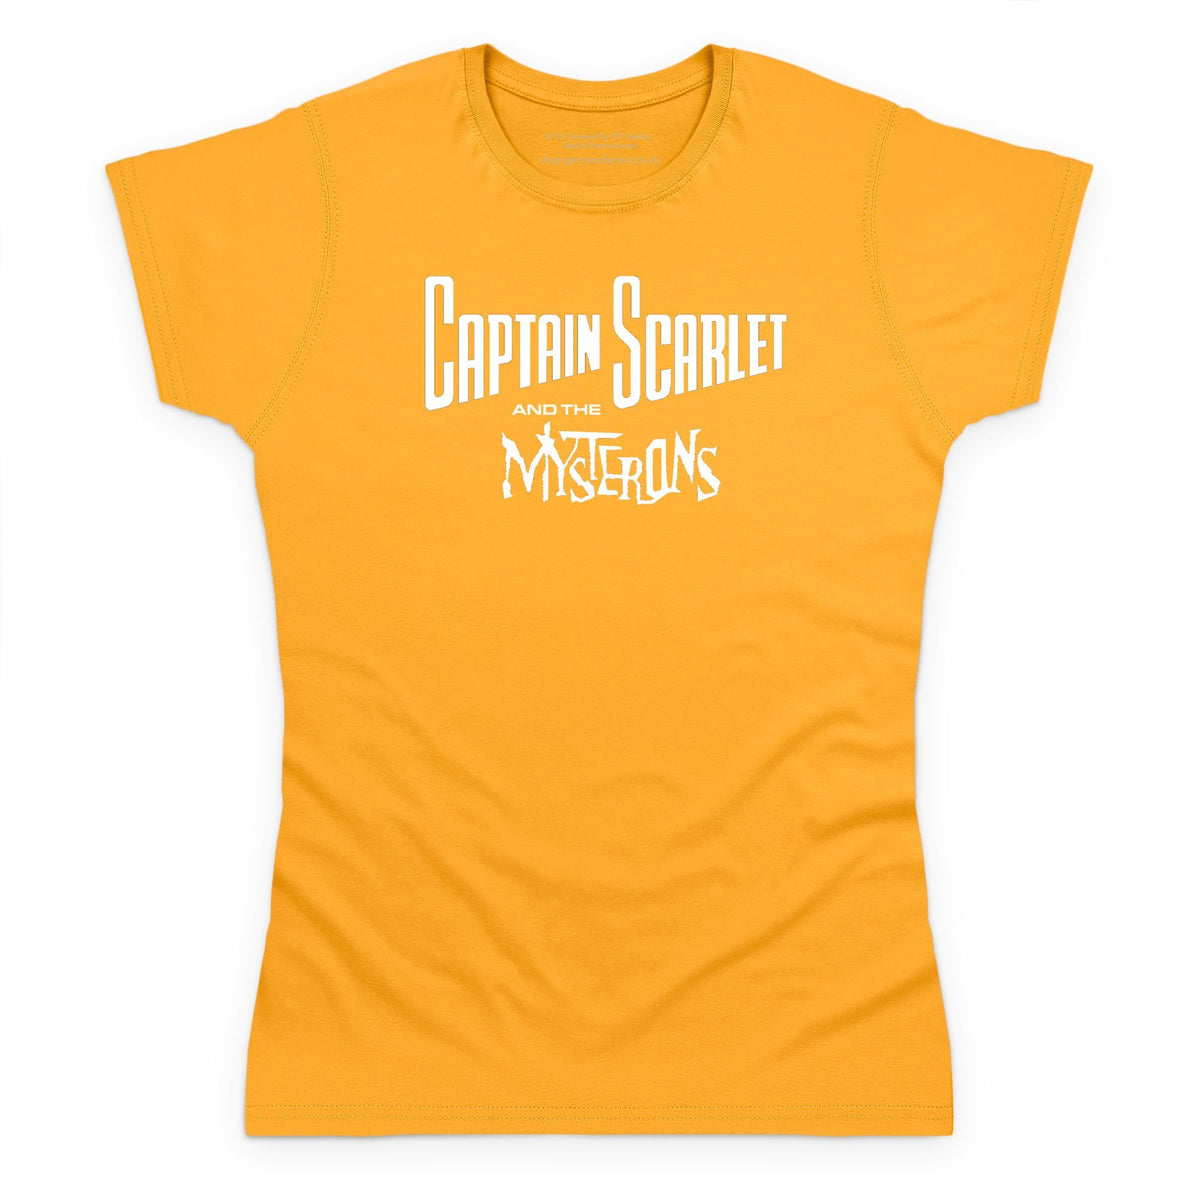 Captain Scarlet Classic White Logo Women's T-Shirt [Official & Exclusive] - The Gerry Anderson Store